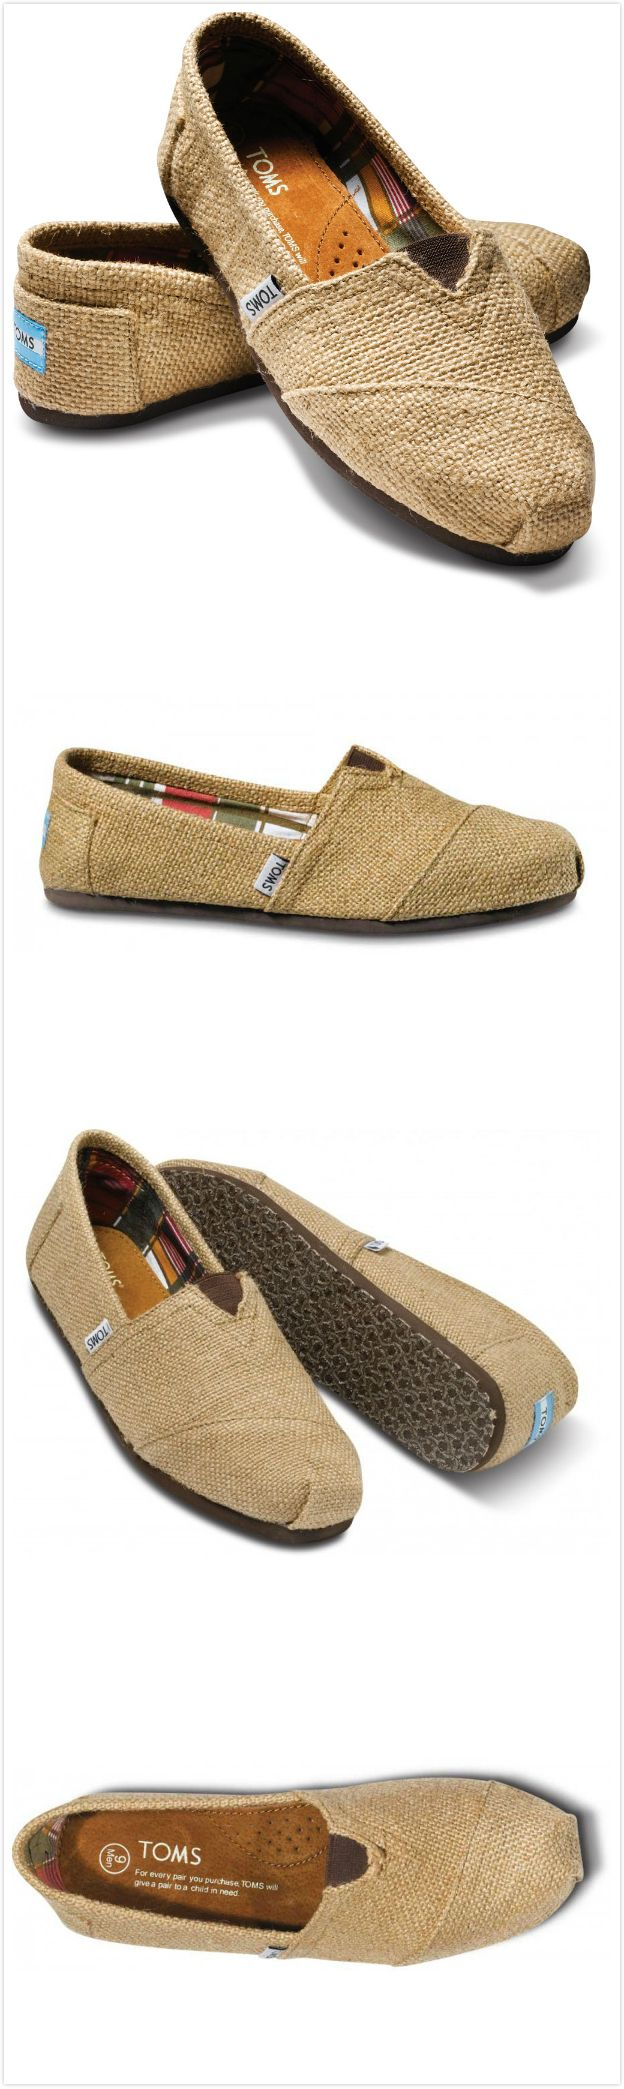 TOMS Shoes Outlet... Same company, lots of sizes! ... | Products I L ...